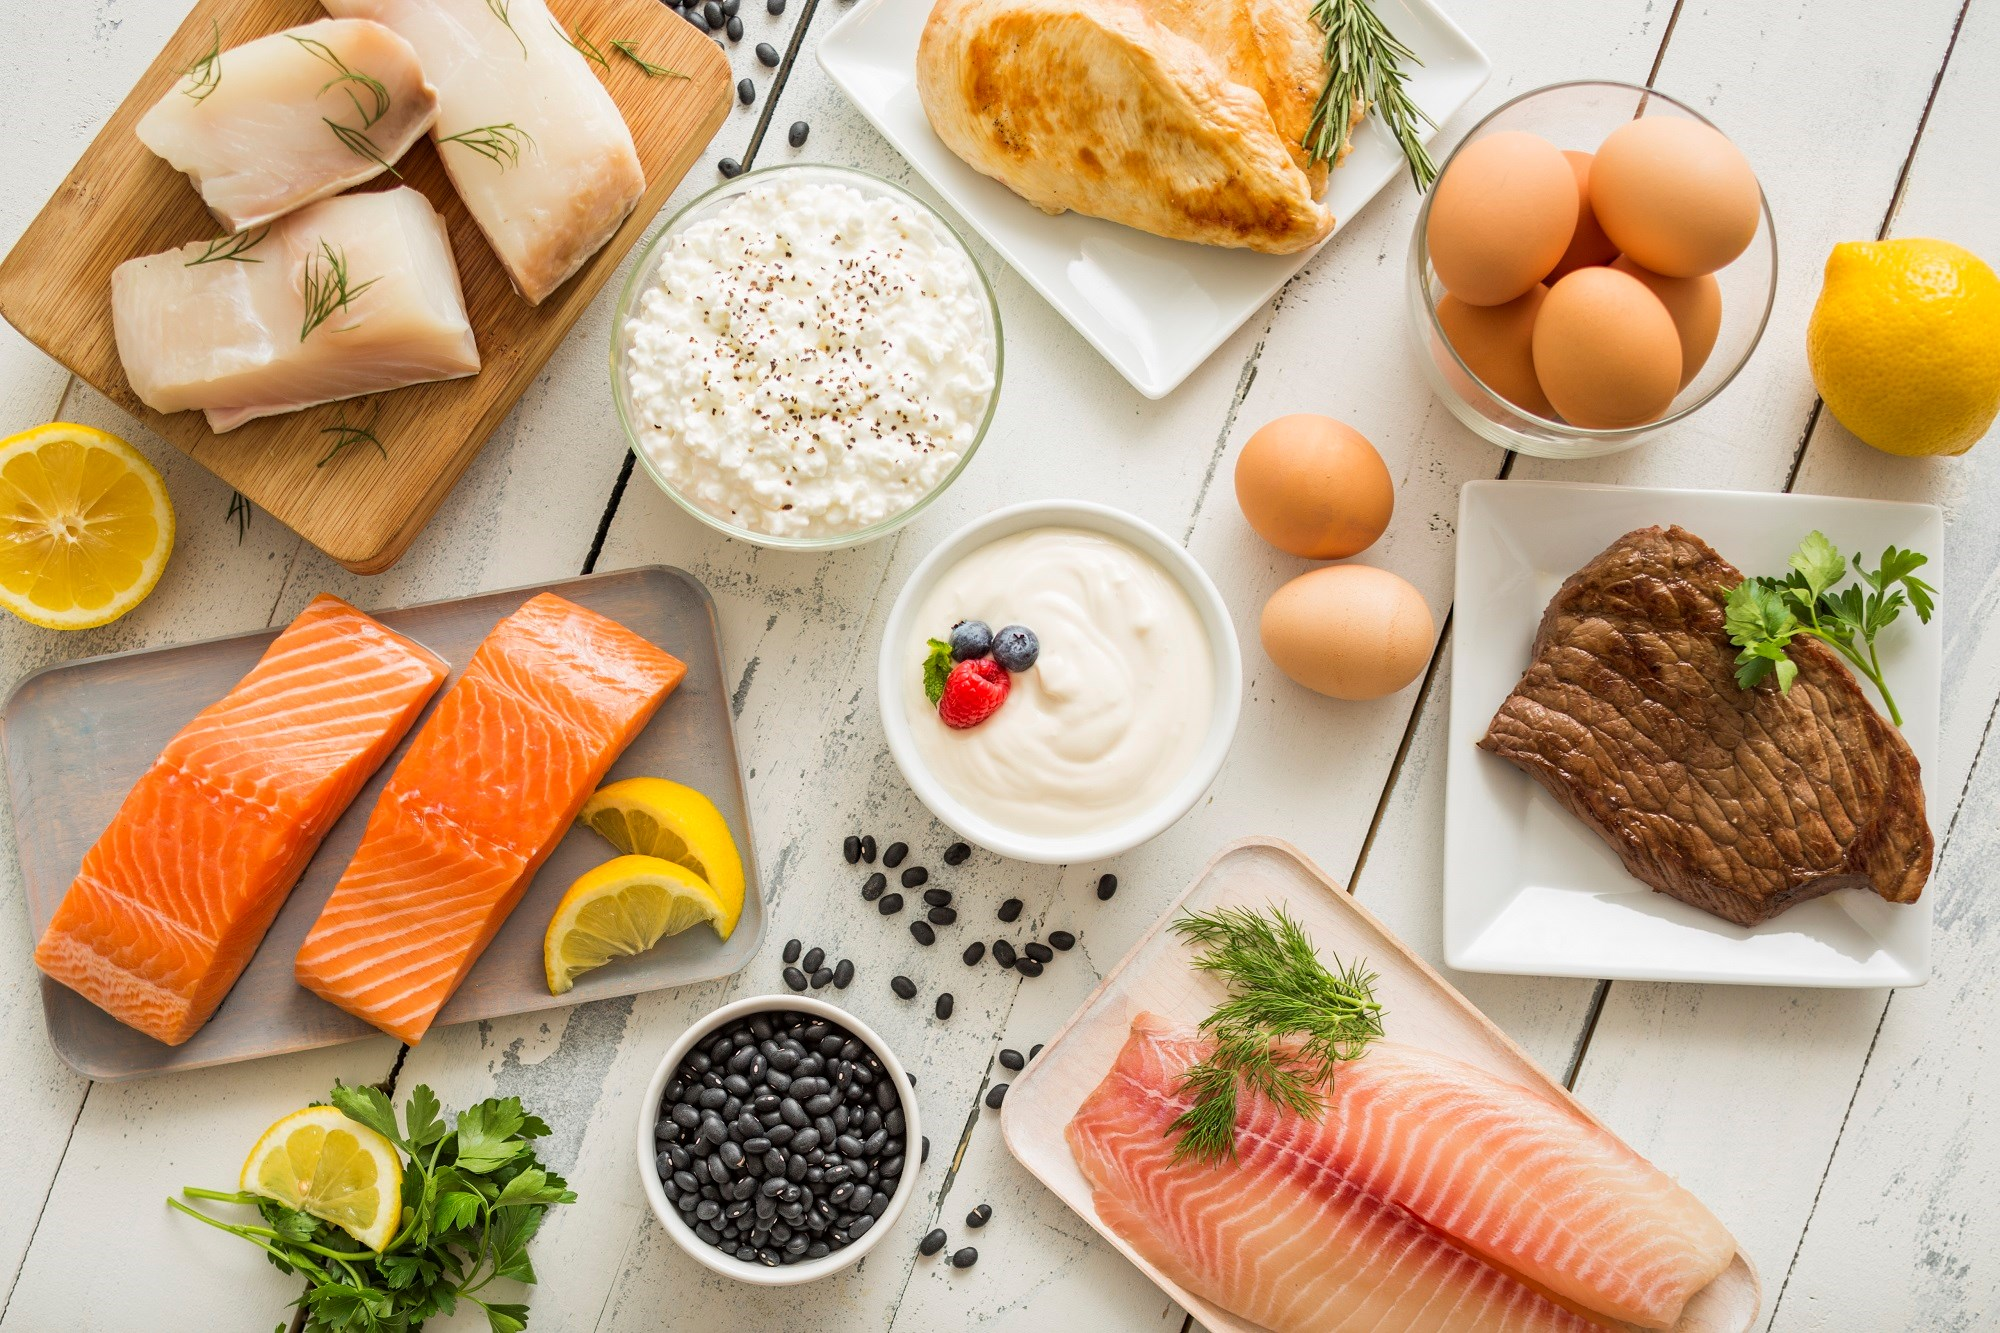 A healthy diet including fish, eggs, vegetables, poultry, and legumes may lower the risk for central nervous system demyelination.